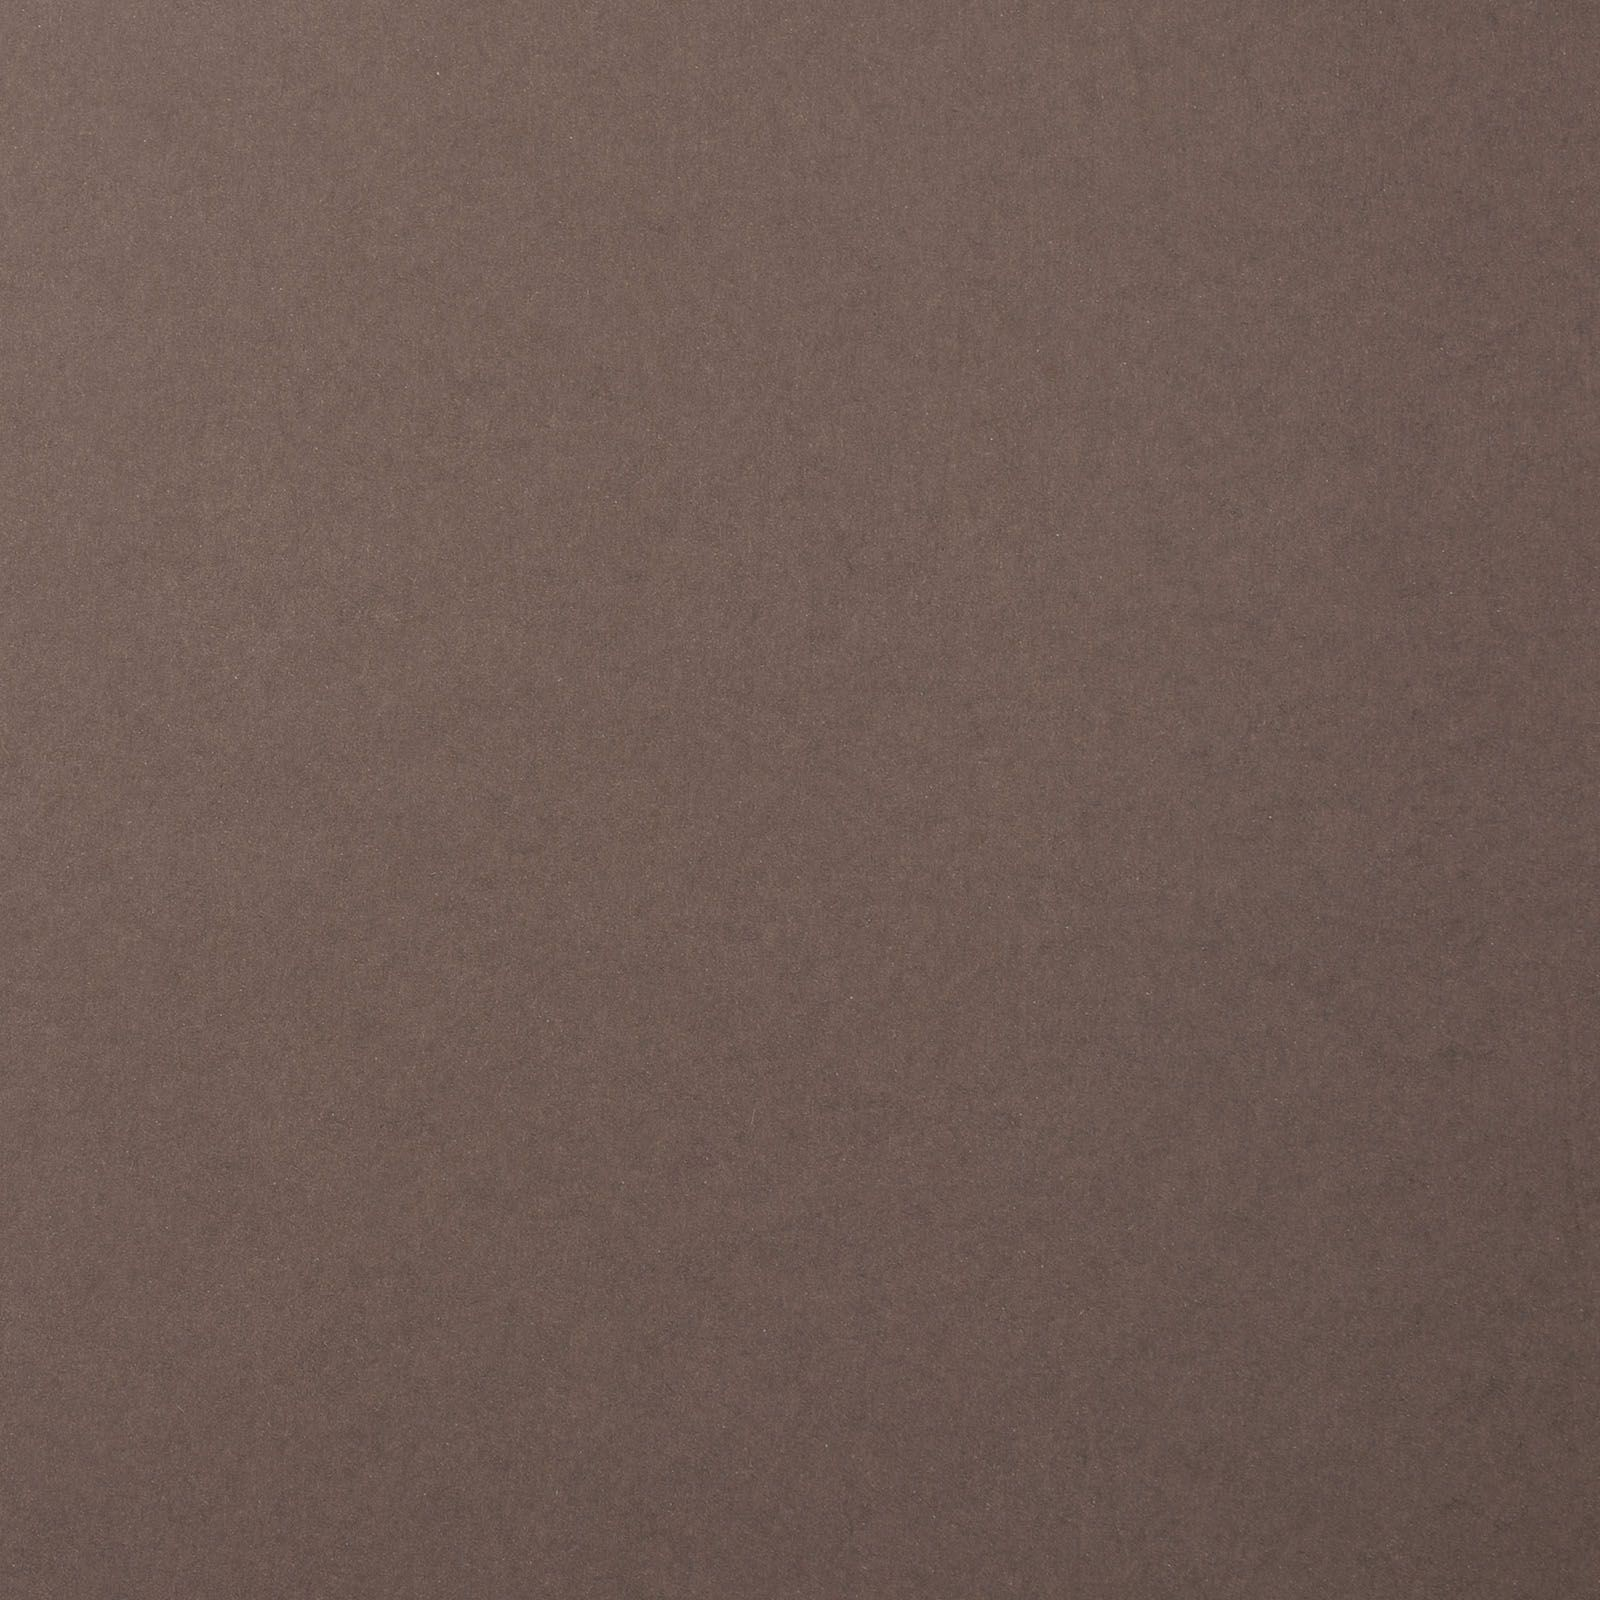 Florence Cardstock smooth Concrete